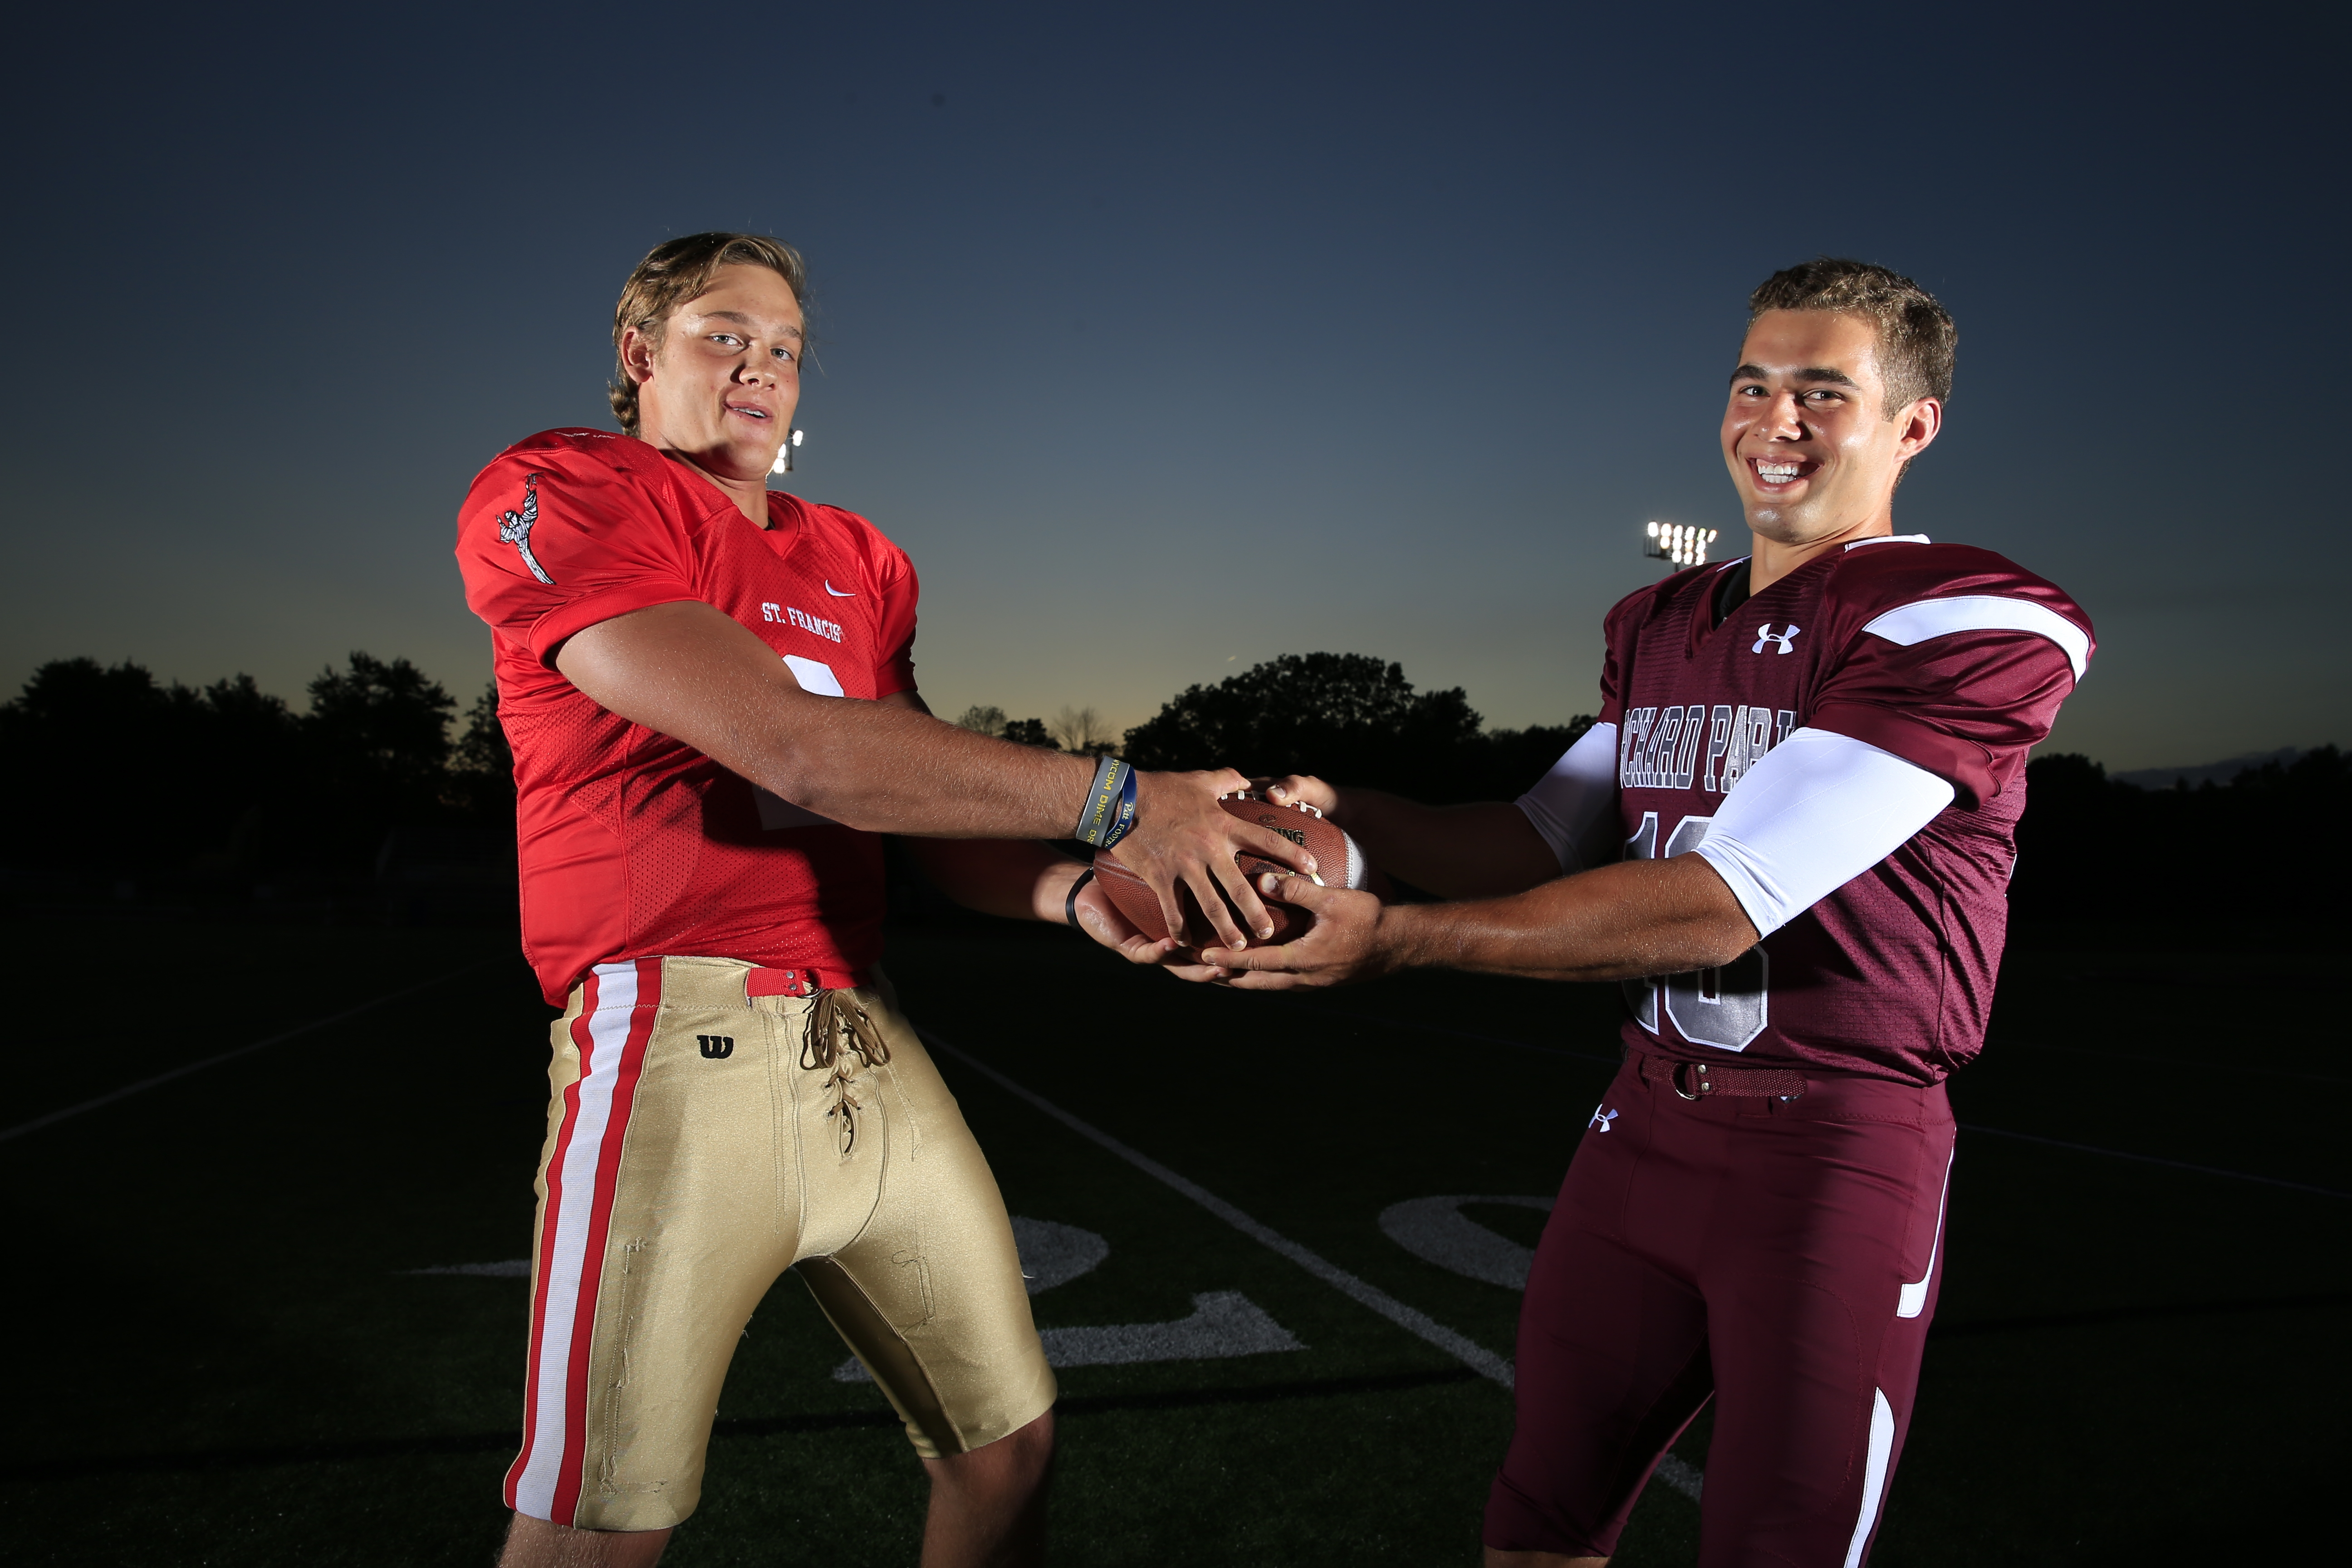 They could have turned into fierce and bitter rivals once they matched their athletic talents in the swimming pool back when they were 5 years old. Instead, St. Francis quarterback Jerry Hickson and Orchard Park quarterback Dillon Janca developed a strong bond that persists as both try to lead their schools to postseason glory while carving out a place of prominence in the Western New York record book.